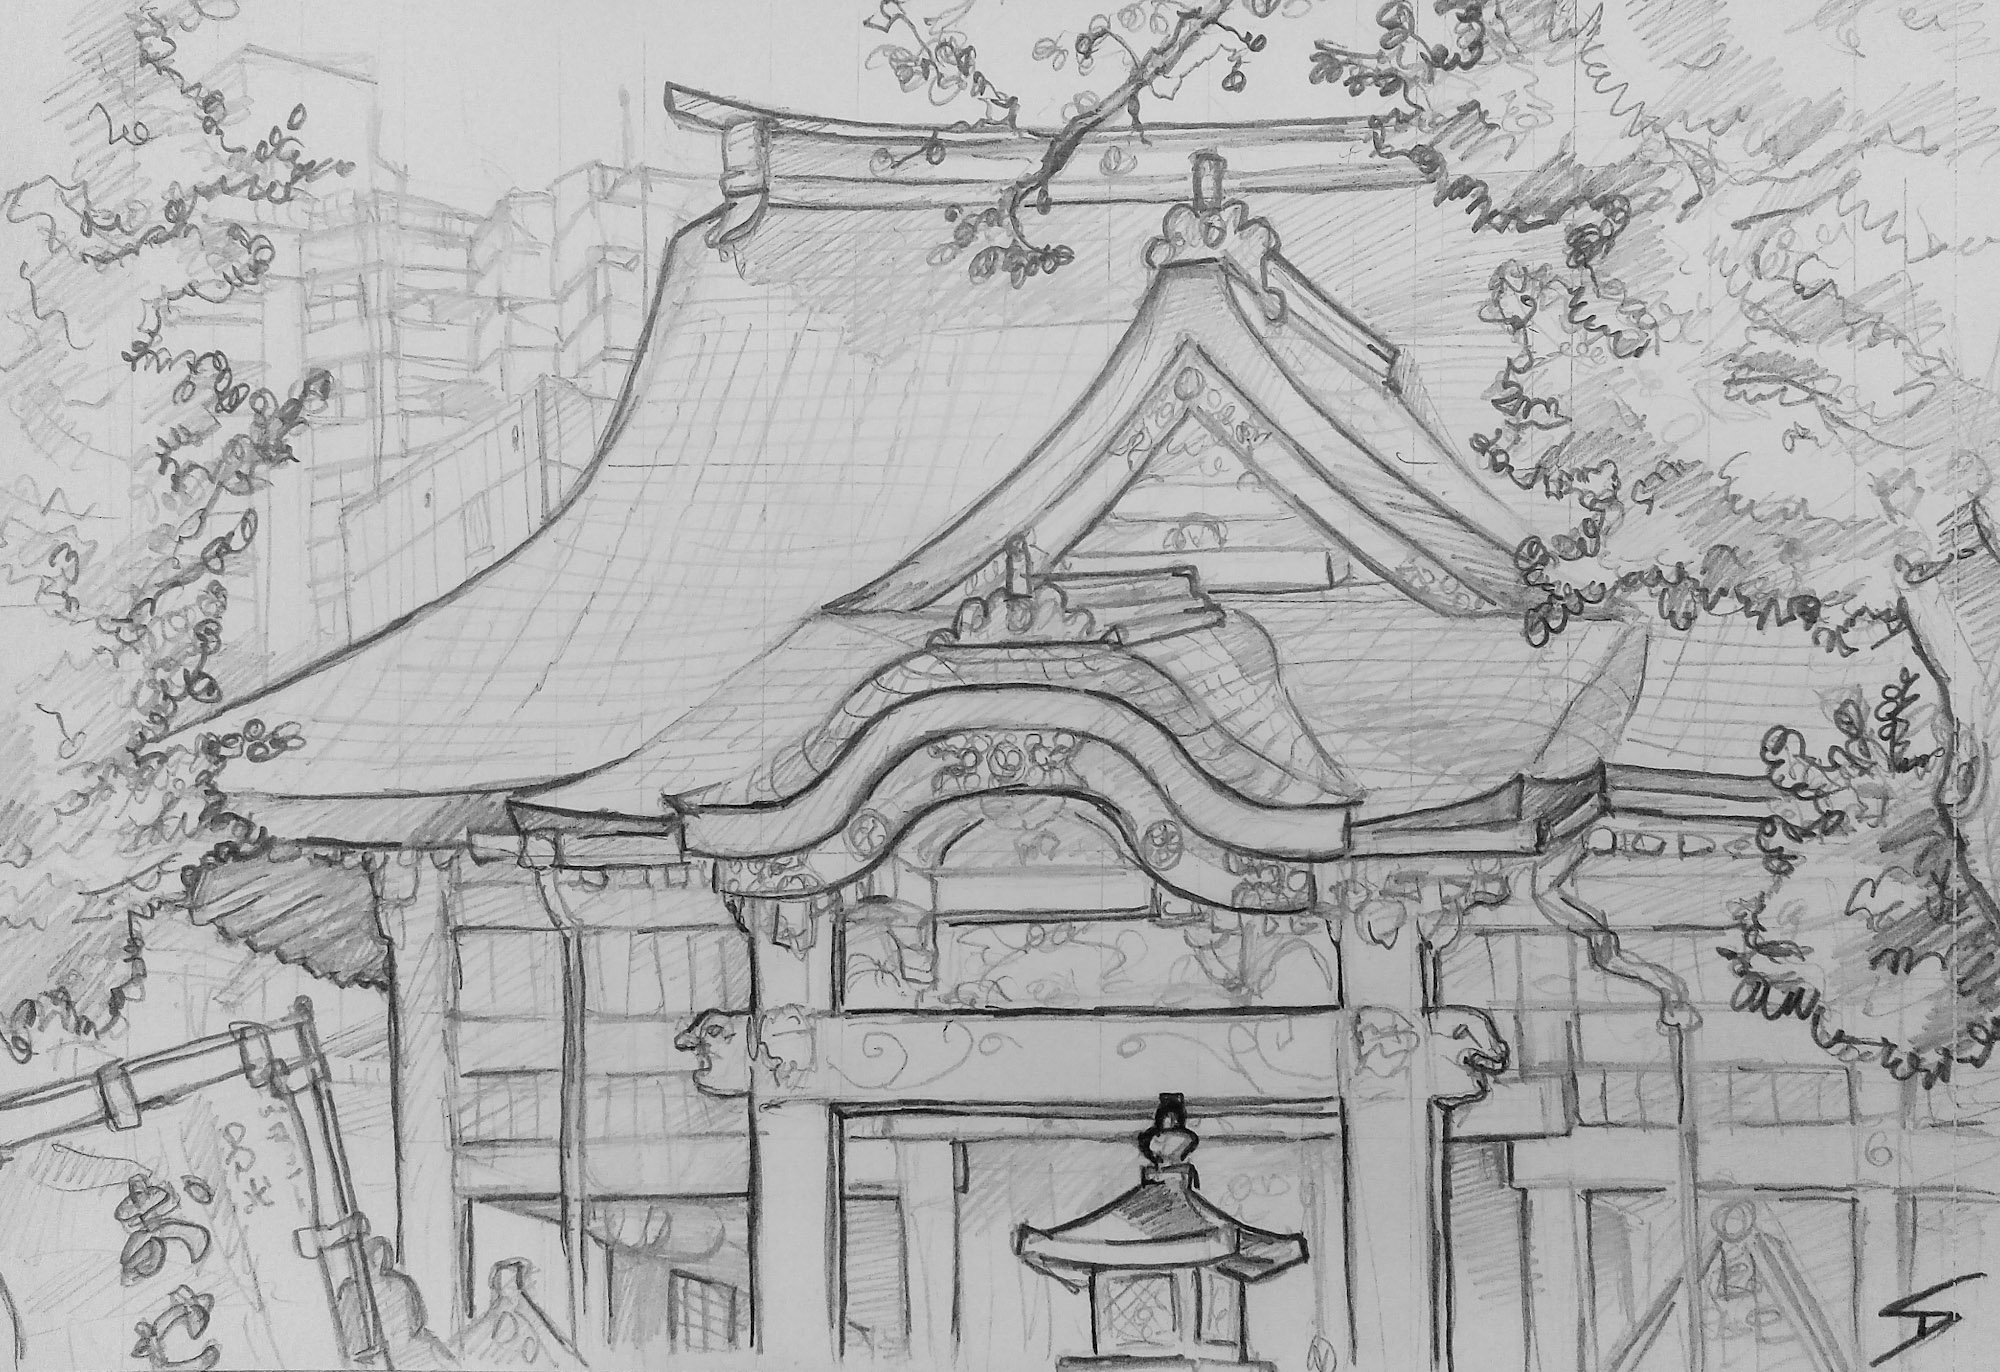 Urban art - Urban photo art - Toshima City, Tokyo, Japan. 'Zoshigaya Kishimoiji Shrine.' Dating back to 1561, this shrine (dedicated to the easy delivery and raising of children) was once visited by Shoguns. sketchbookexplorer.com @davidasutton @sketchbookexplorer Facebook.com/davidanthonysutton #japan #osaka #chuoward #osakacastle #travel #travelblog #art #sketching #cheeryblossom #cherryblossomseason